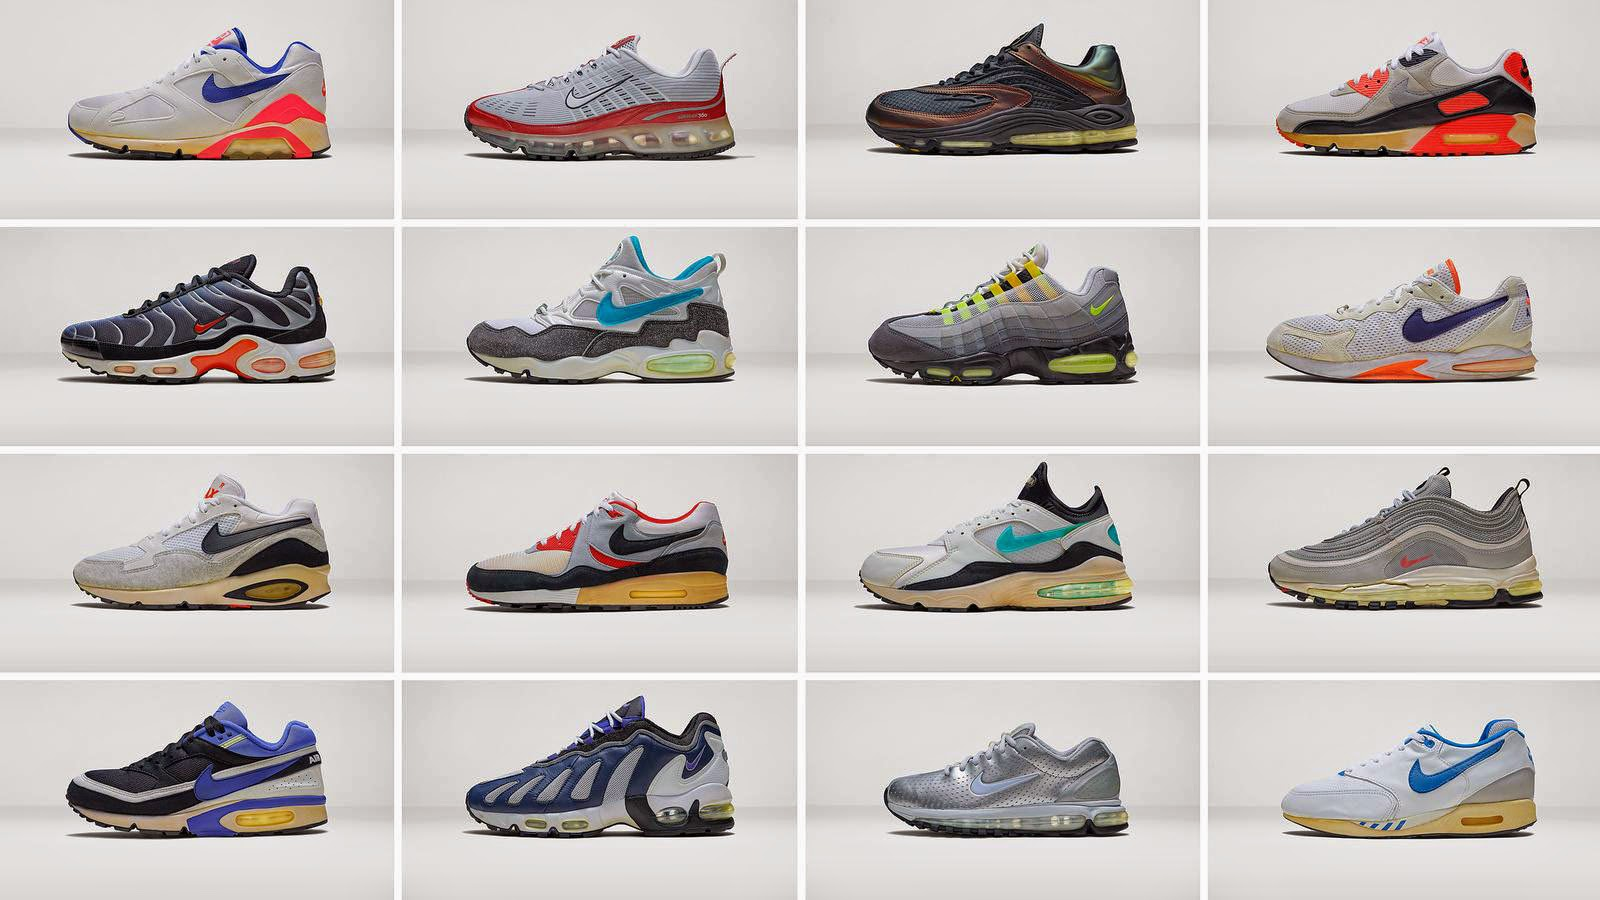 Eniwhere Fashion - Fashion News March 2015 - AirMax Birthday